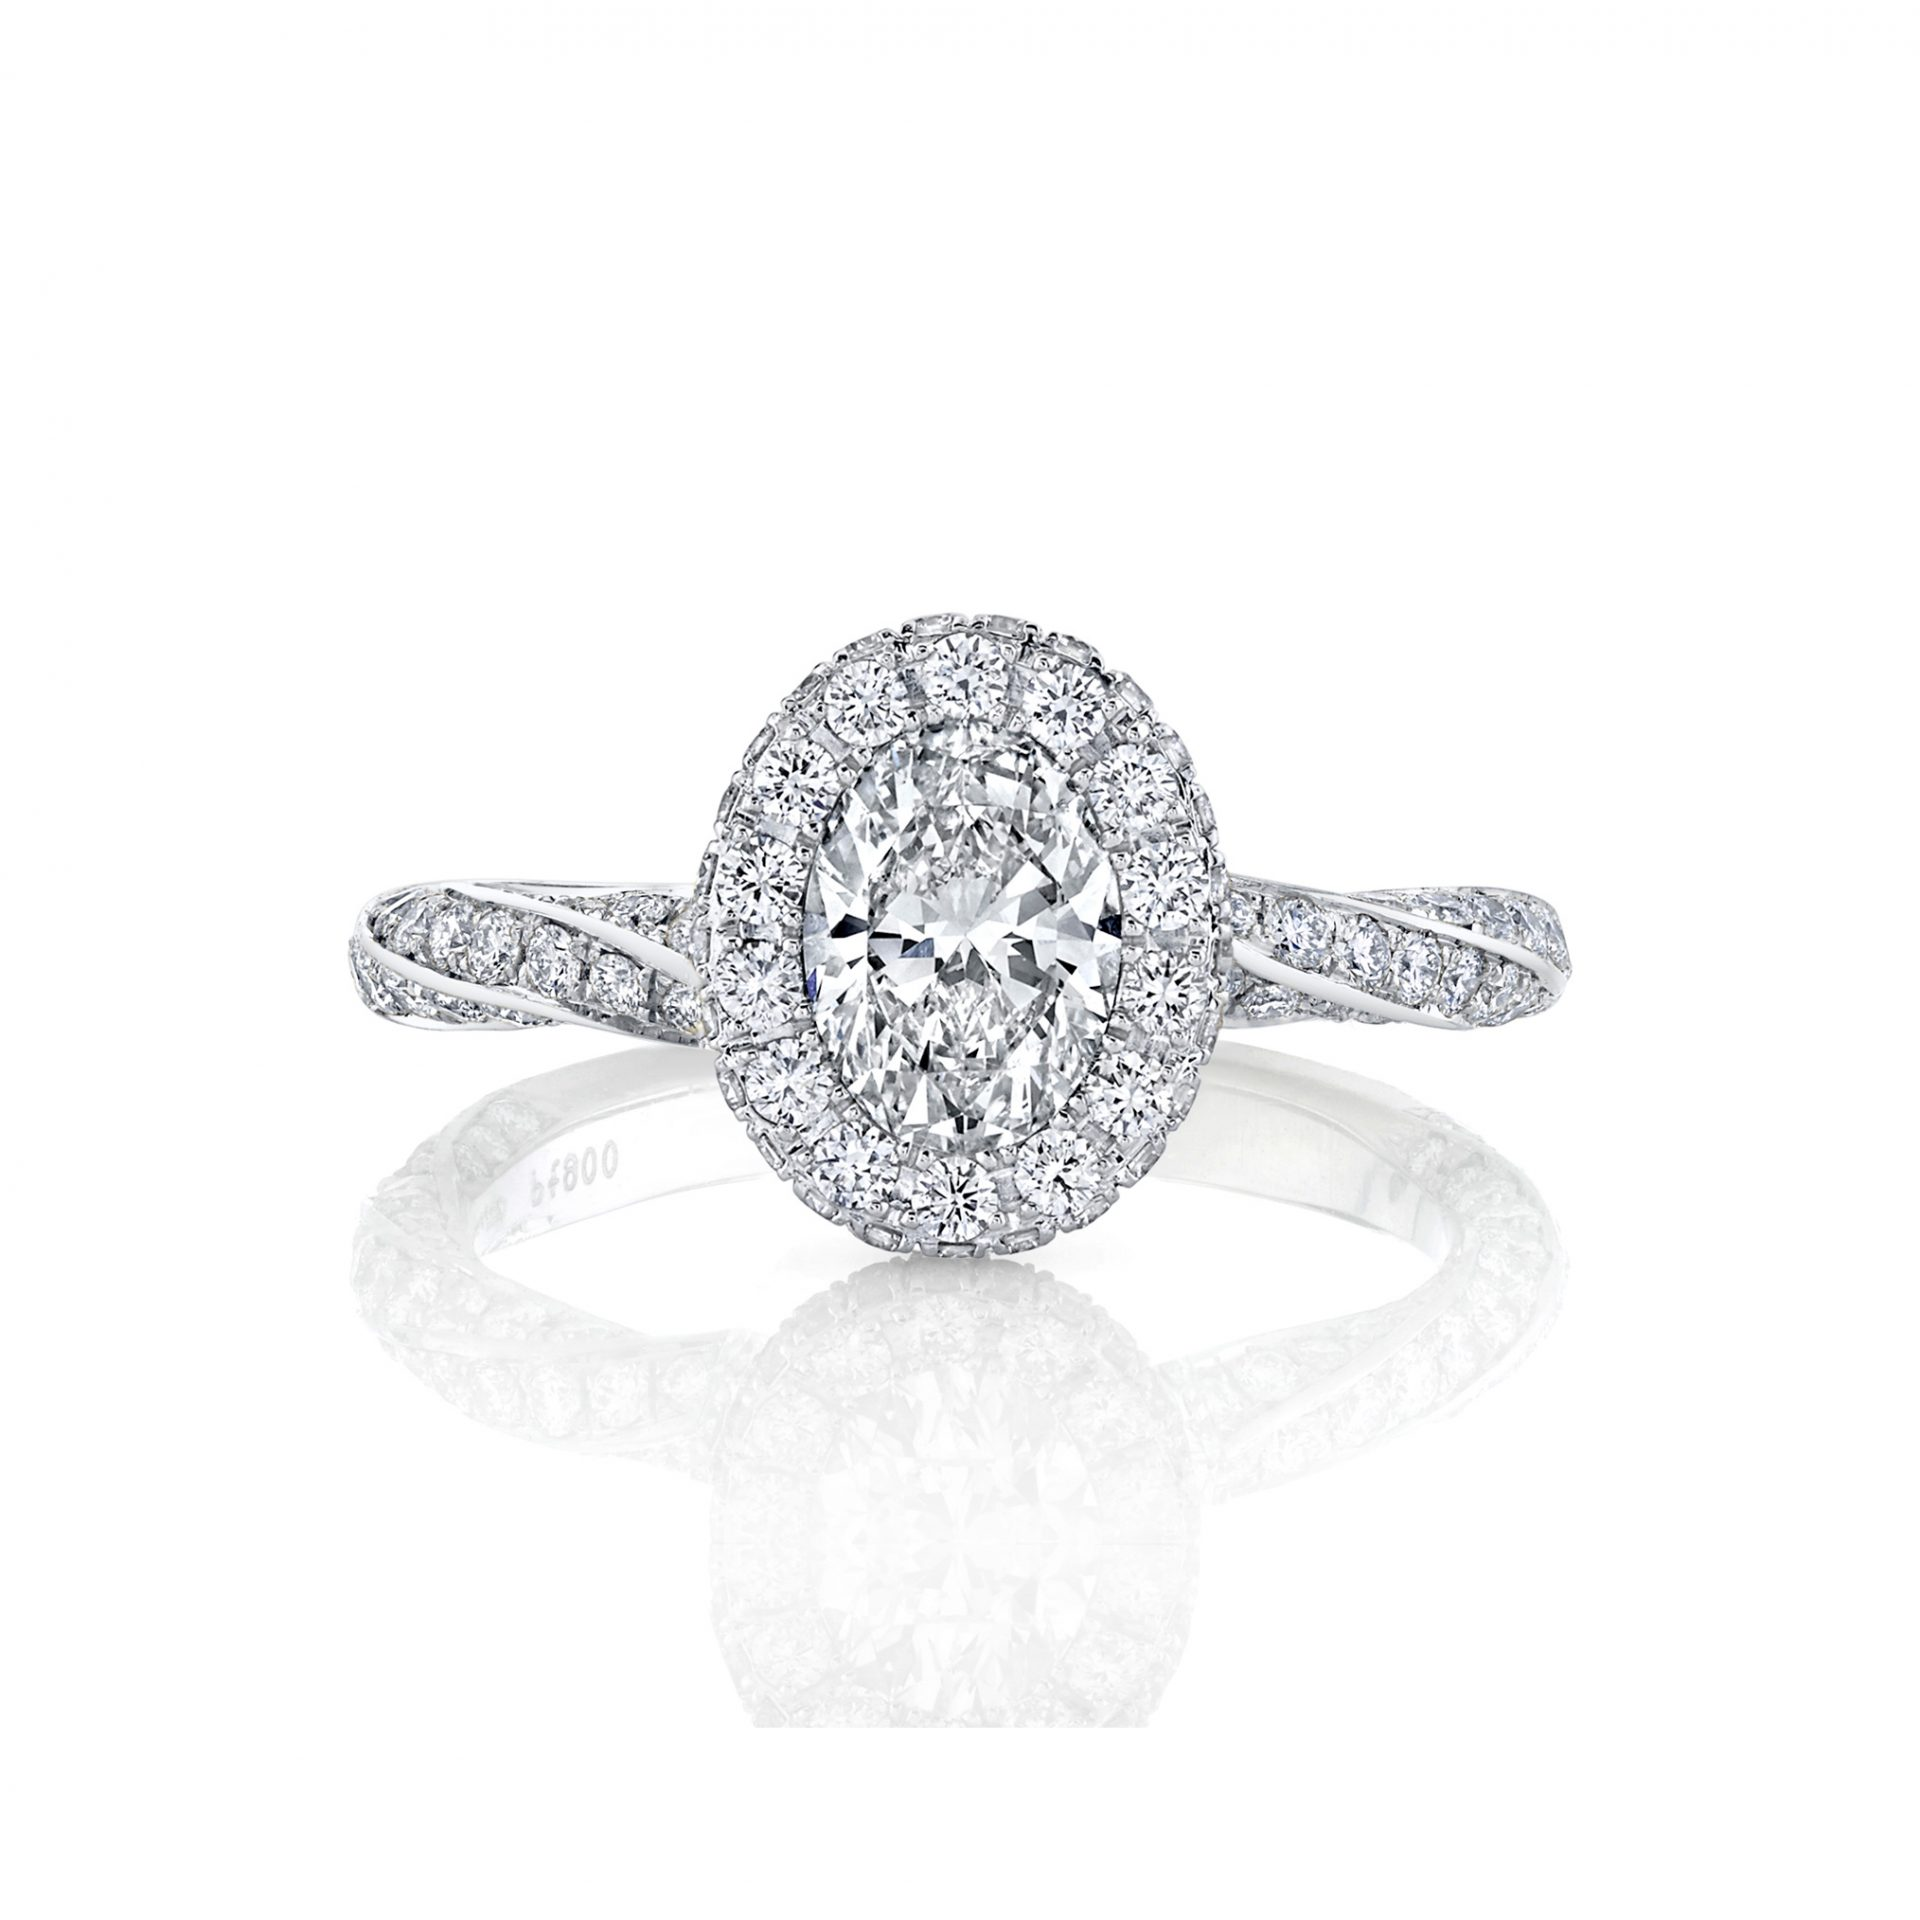 Camille Oval Seamless Halo® Engagement Ring with diamond pavé in 18k White Gold Front View by Oui by Jean Dousset